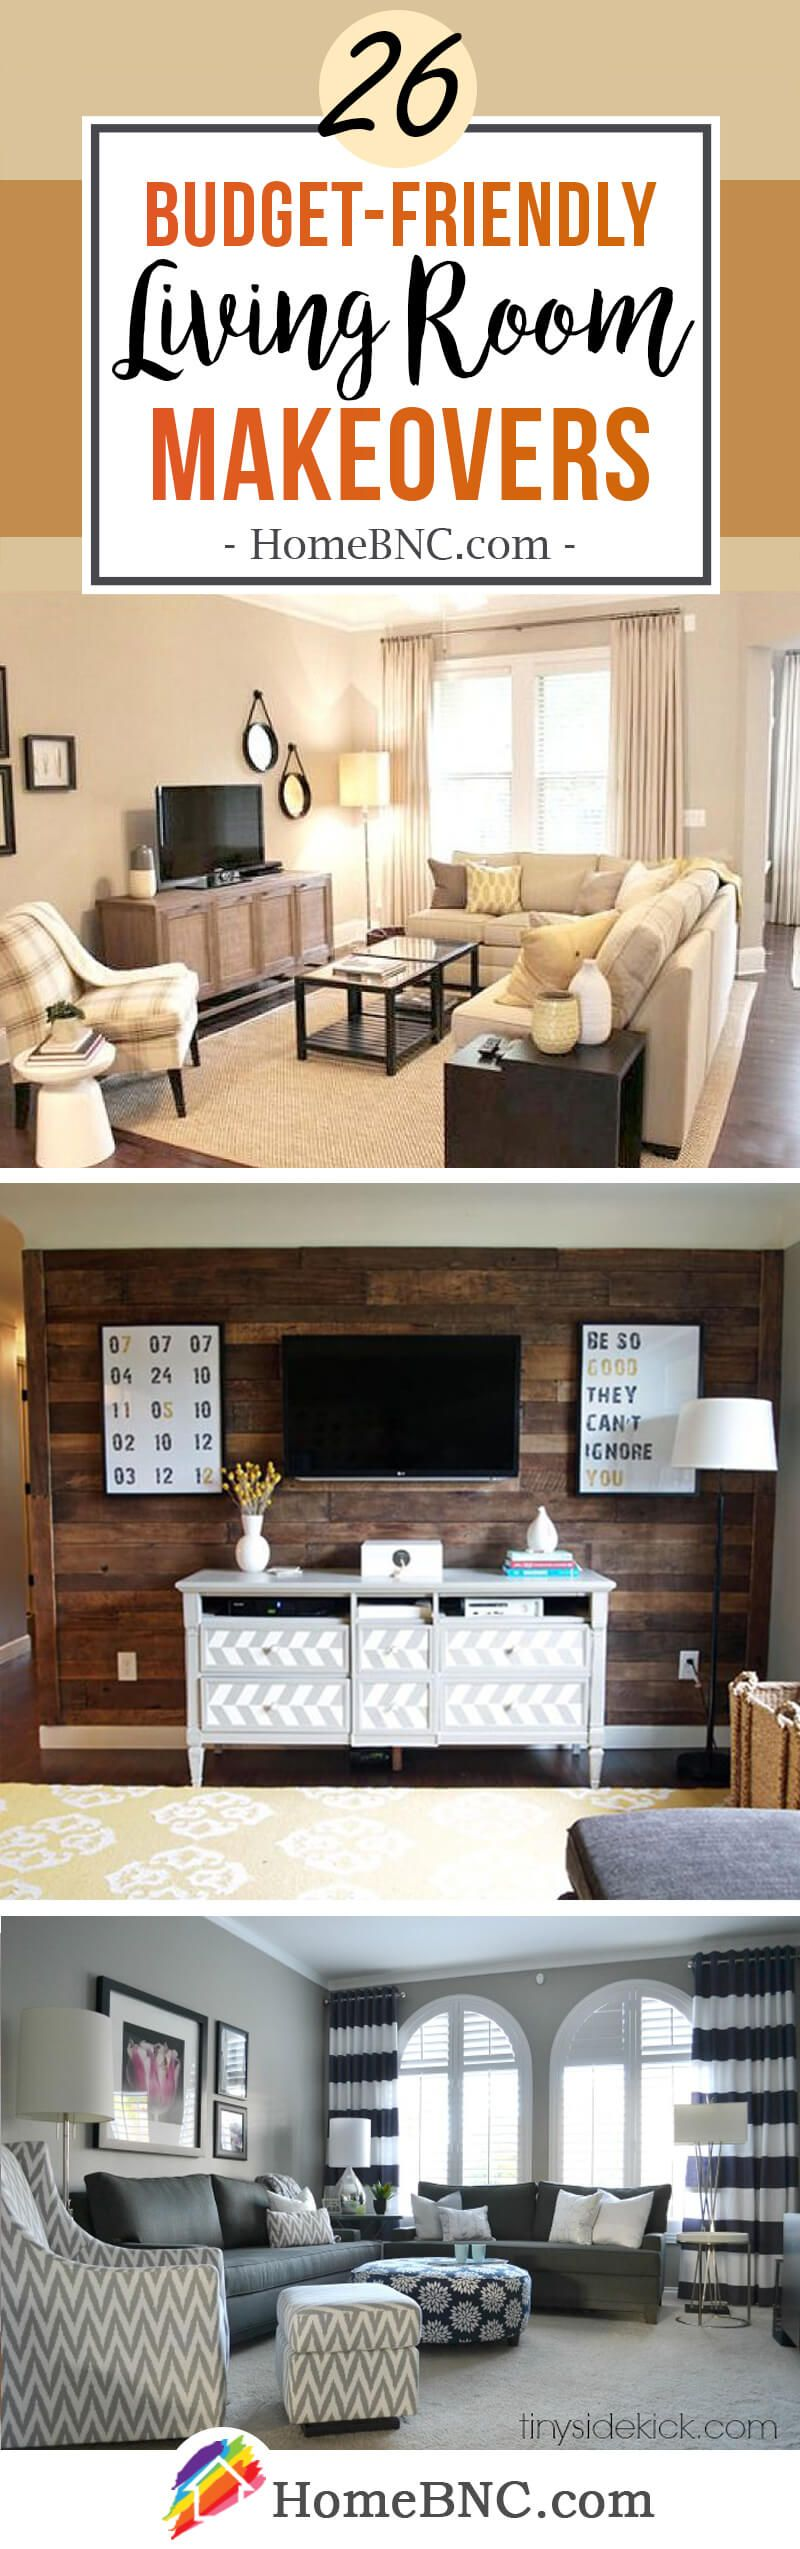 Before And After 26 Budget Friendly Living Room Makeovers To Inspire You Budget Friendly Living Room Living Room Makeover Living Room On A Budget Living room makeovers ideas